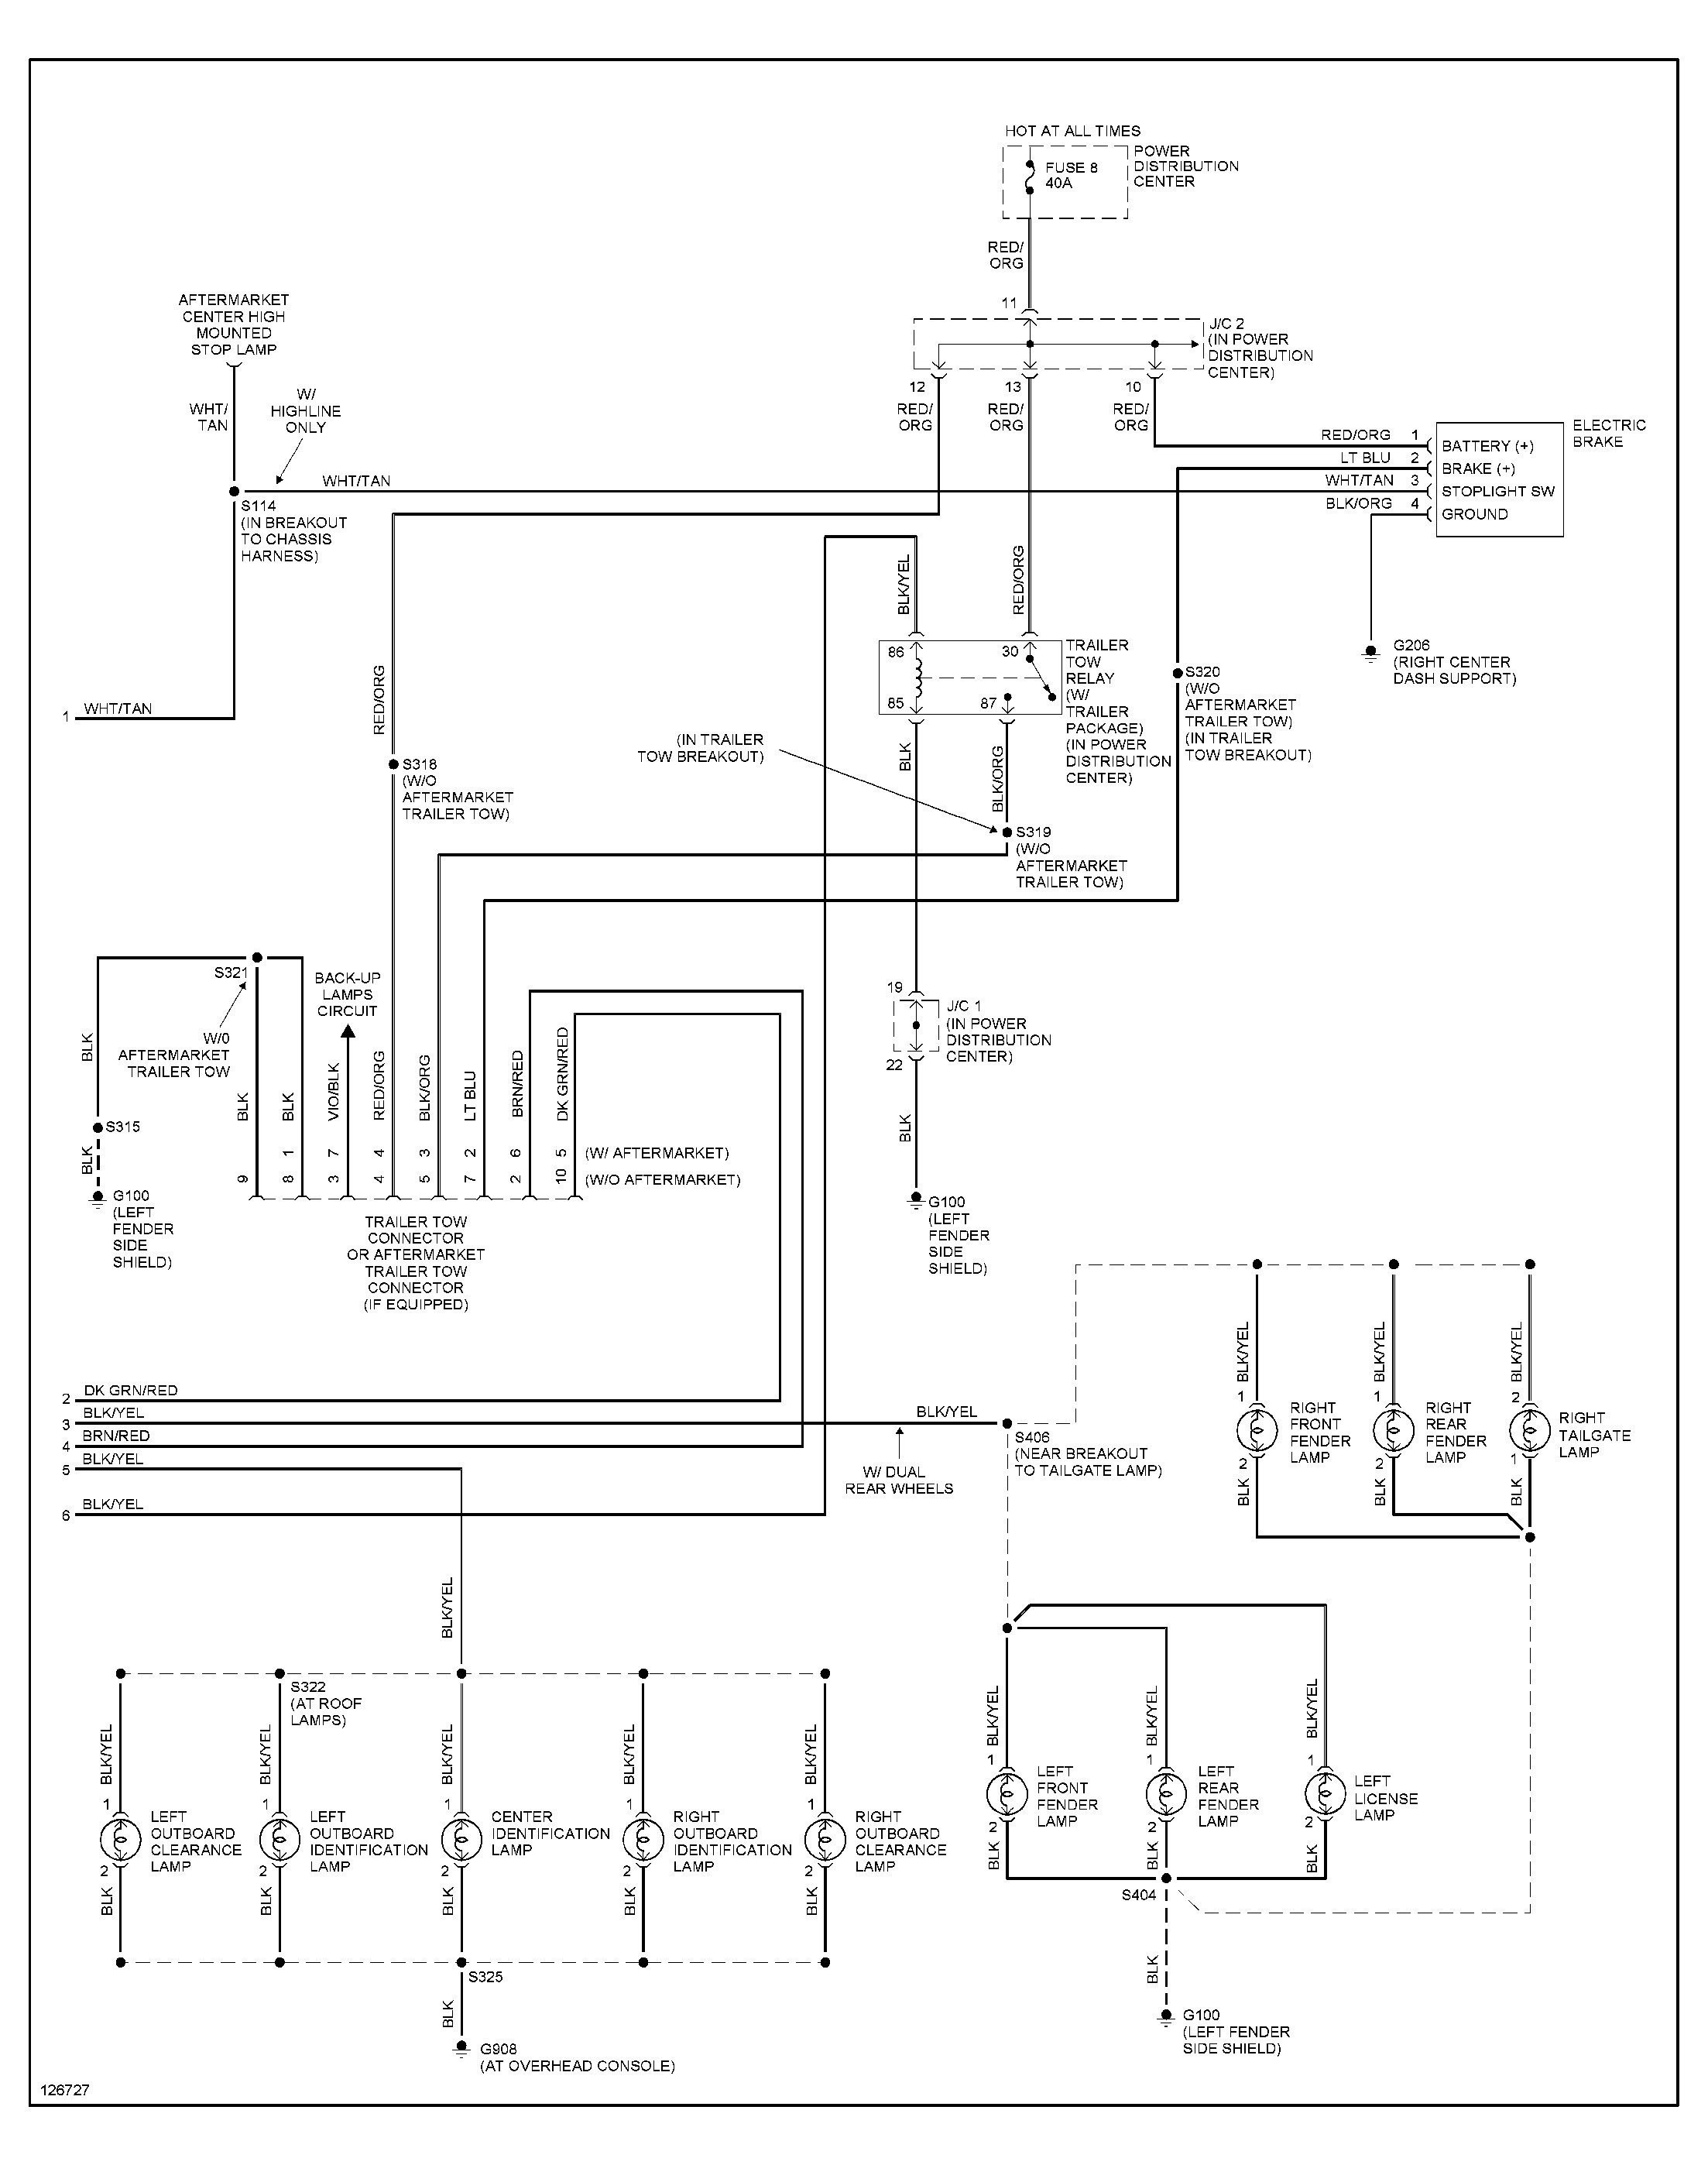 Dodge 4 7 Engine Diagram 2 1997 Dodge Ram 1500 Tail Lights Impressive Chevy Spark Tail Light Of Dodge 4 7 Engine Diagram 2